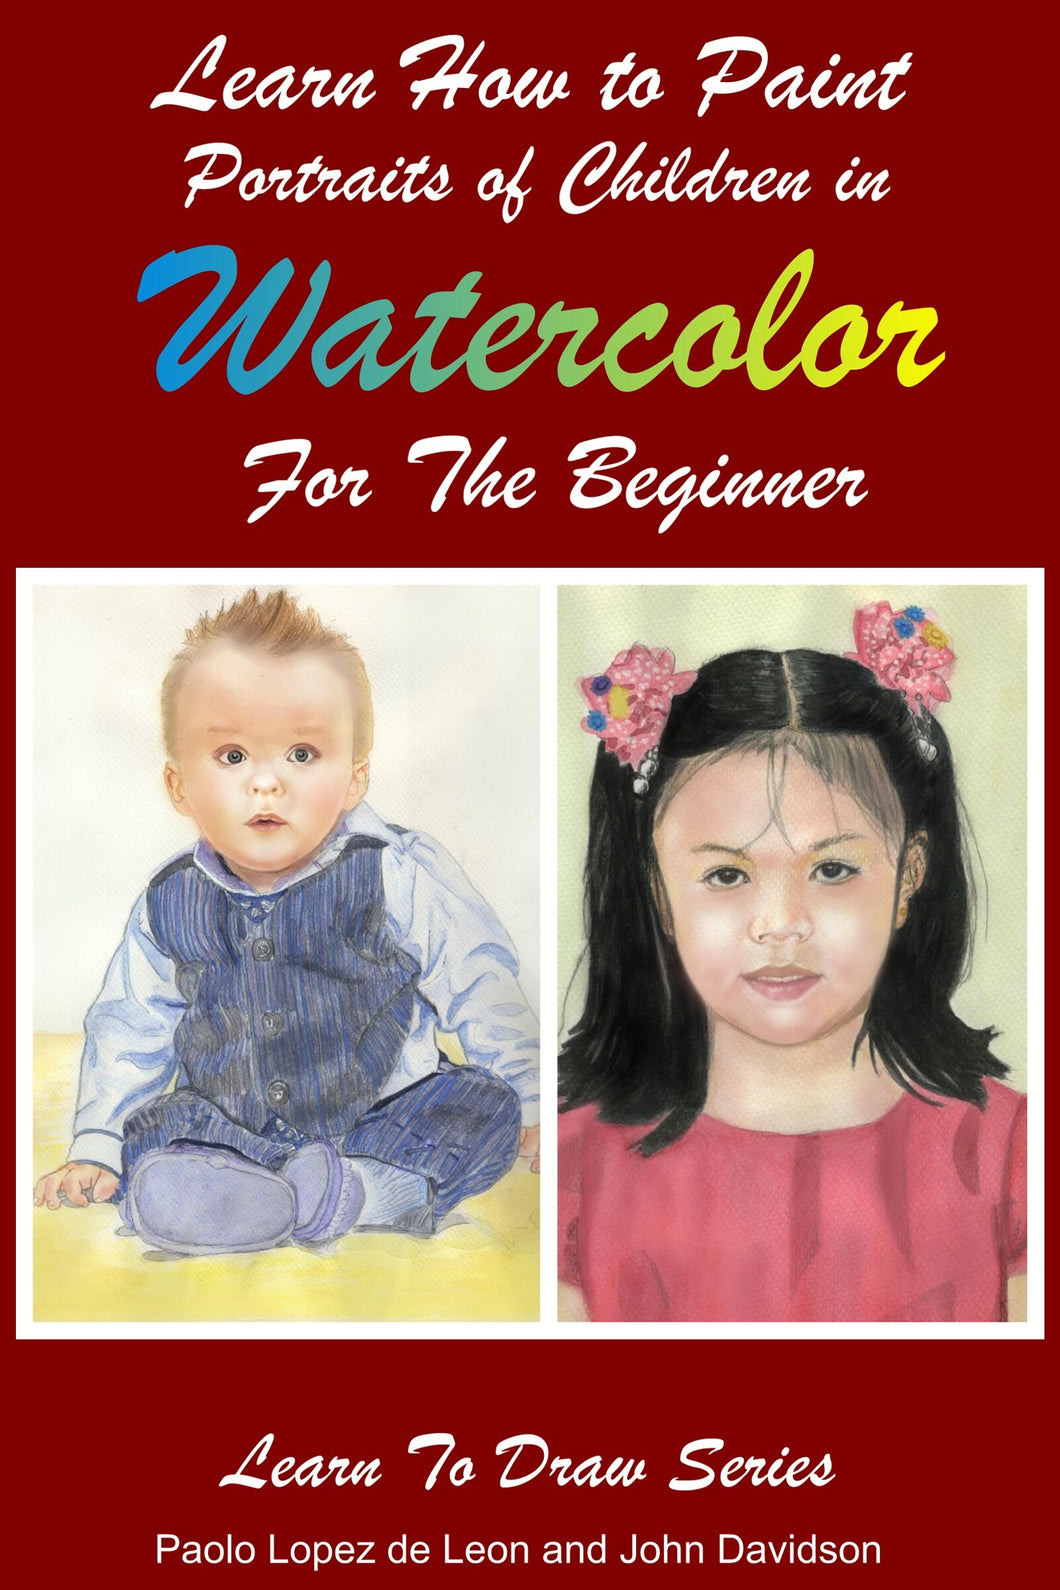 Learn How to Paint Portraits of People In Watercolor For the Absolute Beginners